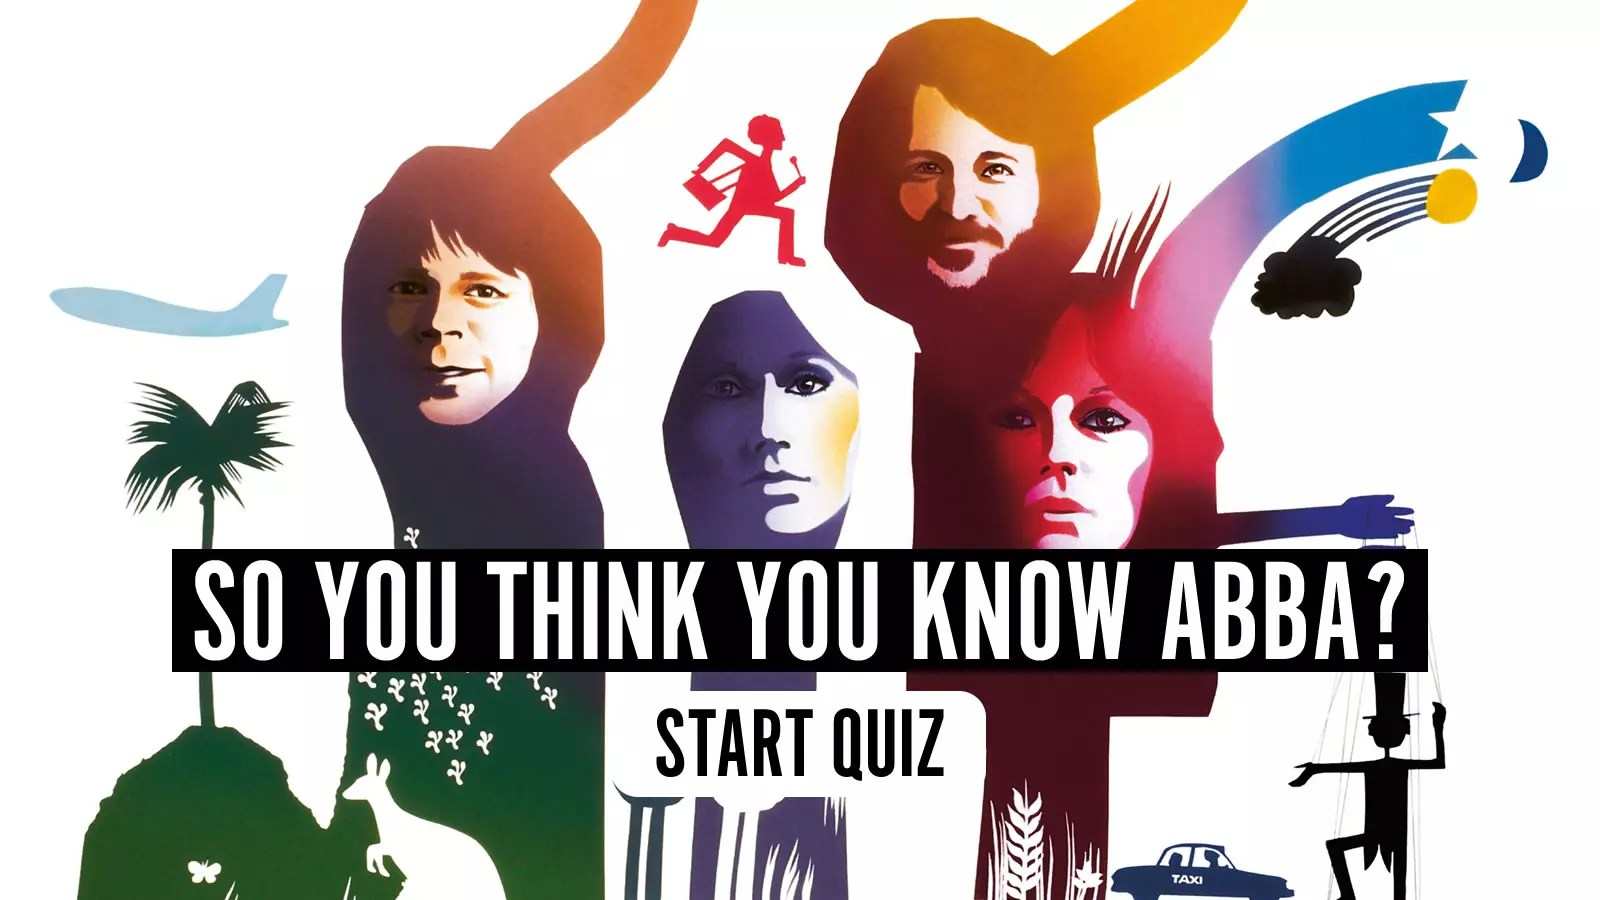 So You Think You Know Abba Uquiz